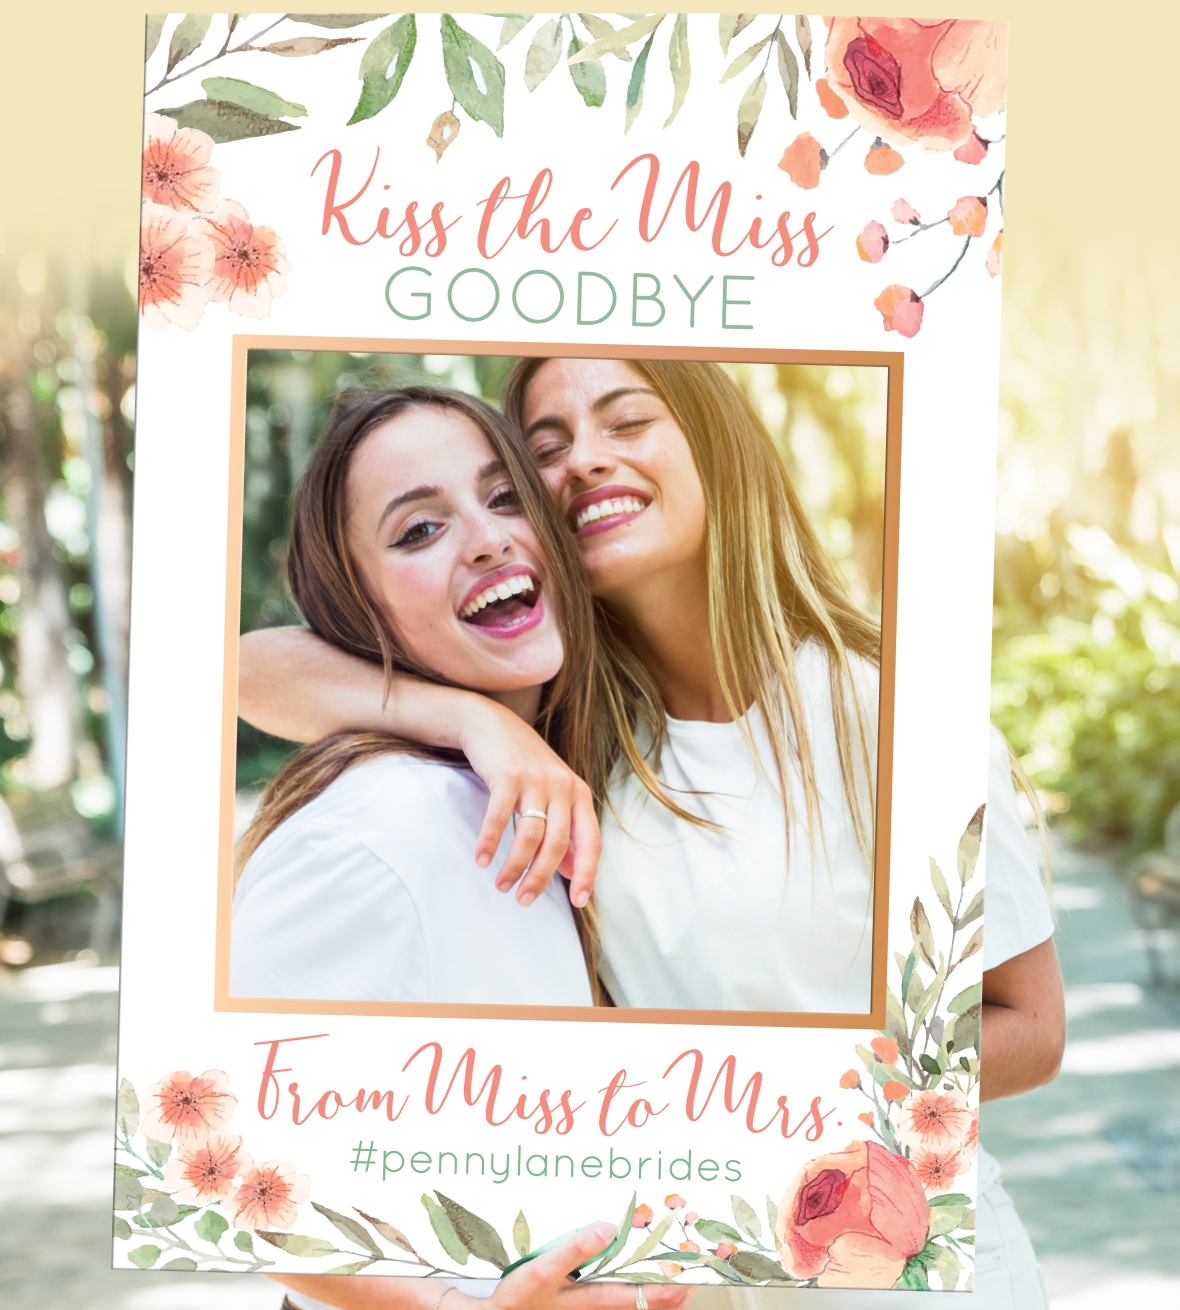 Bridal Shower Selfie Frame Kiss the Miss Goodbye Penny Lane Printing Dream Wedding Expo Willow Creek Lakeville NY